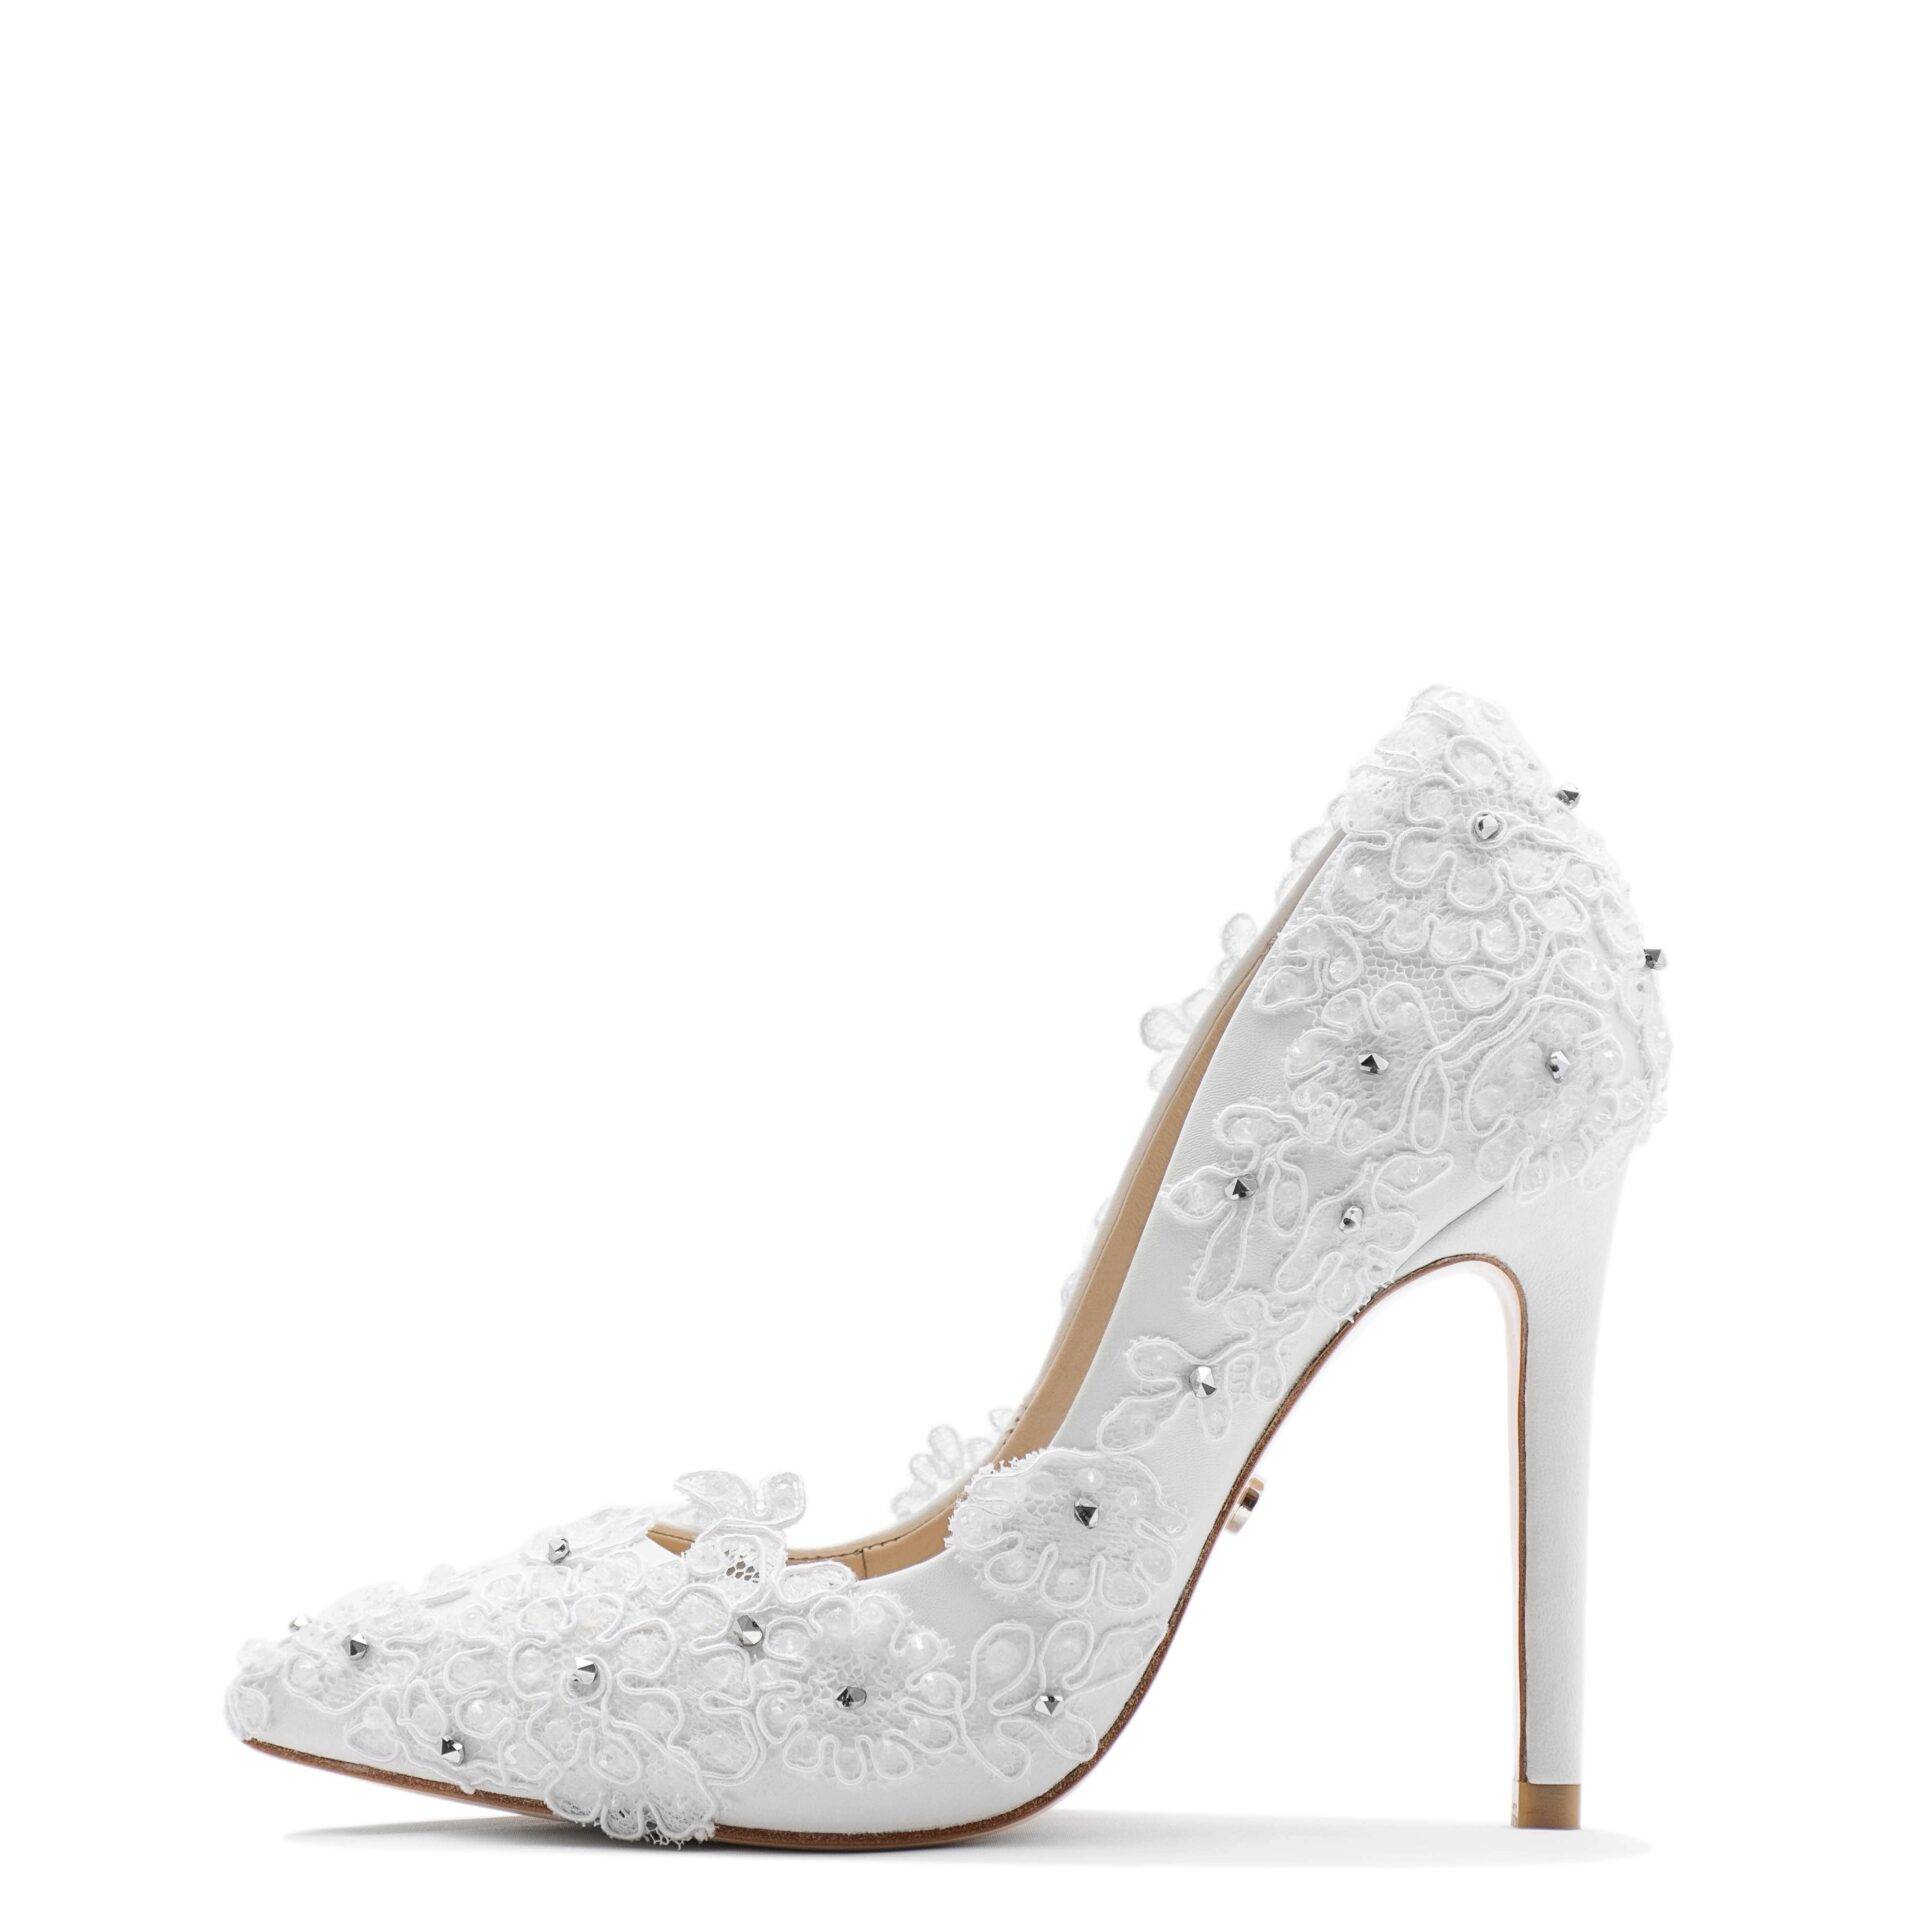 White wedding pump with lace & crystals